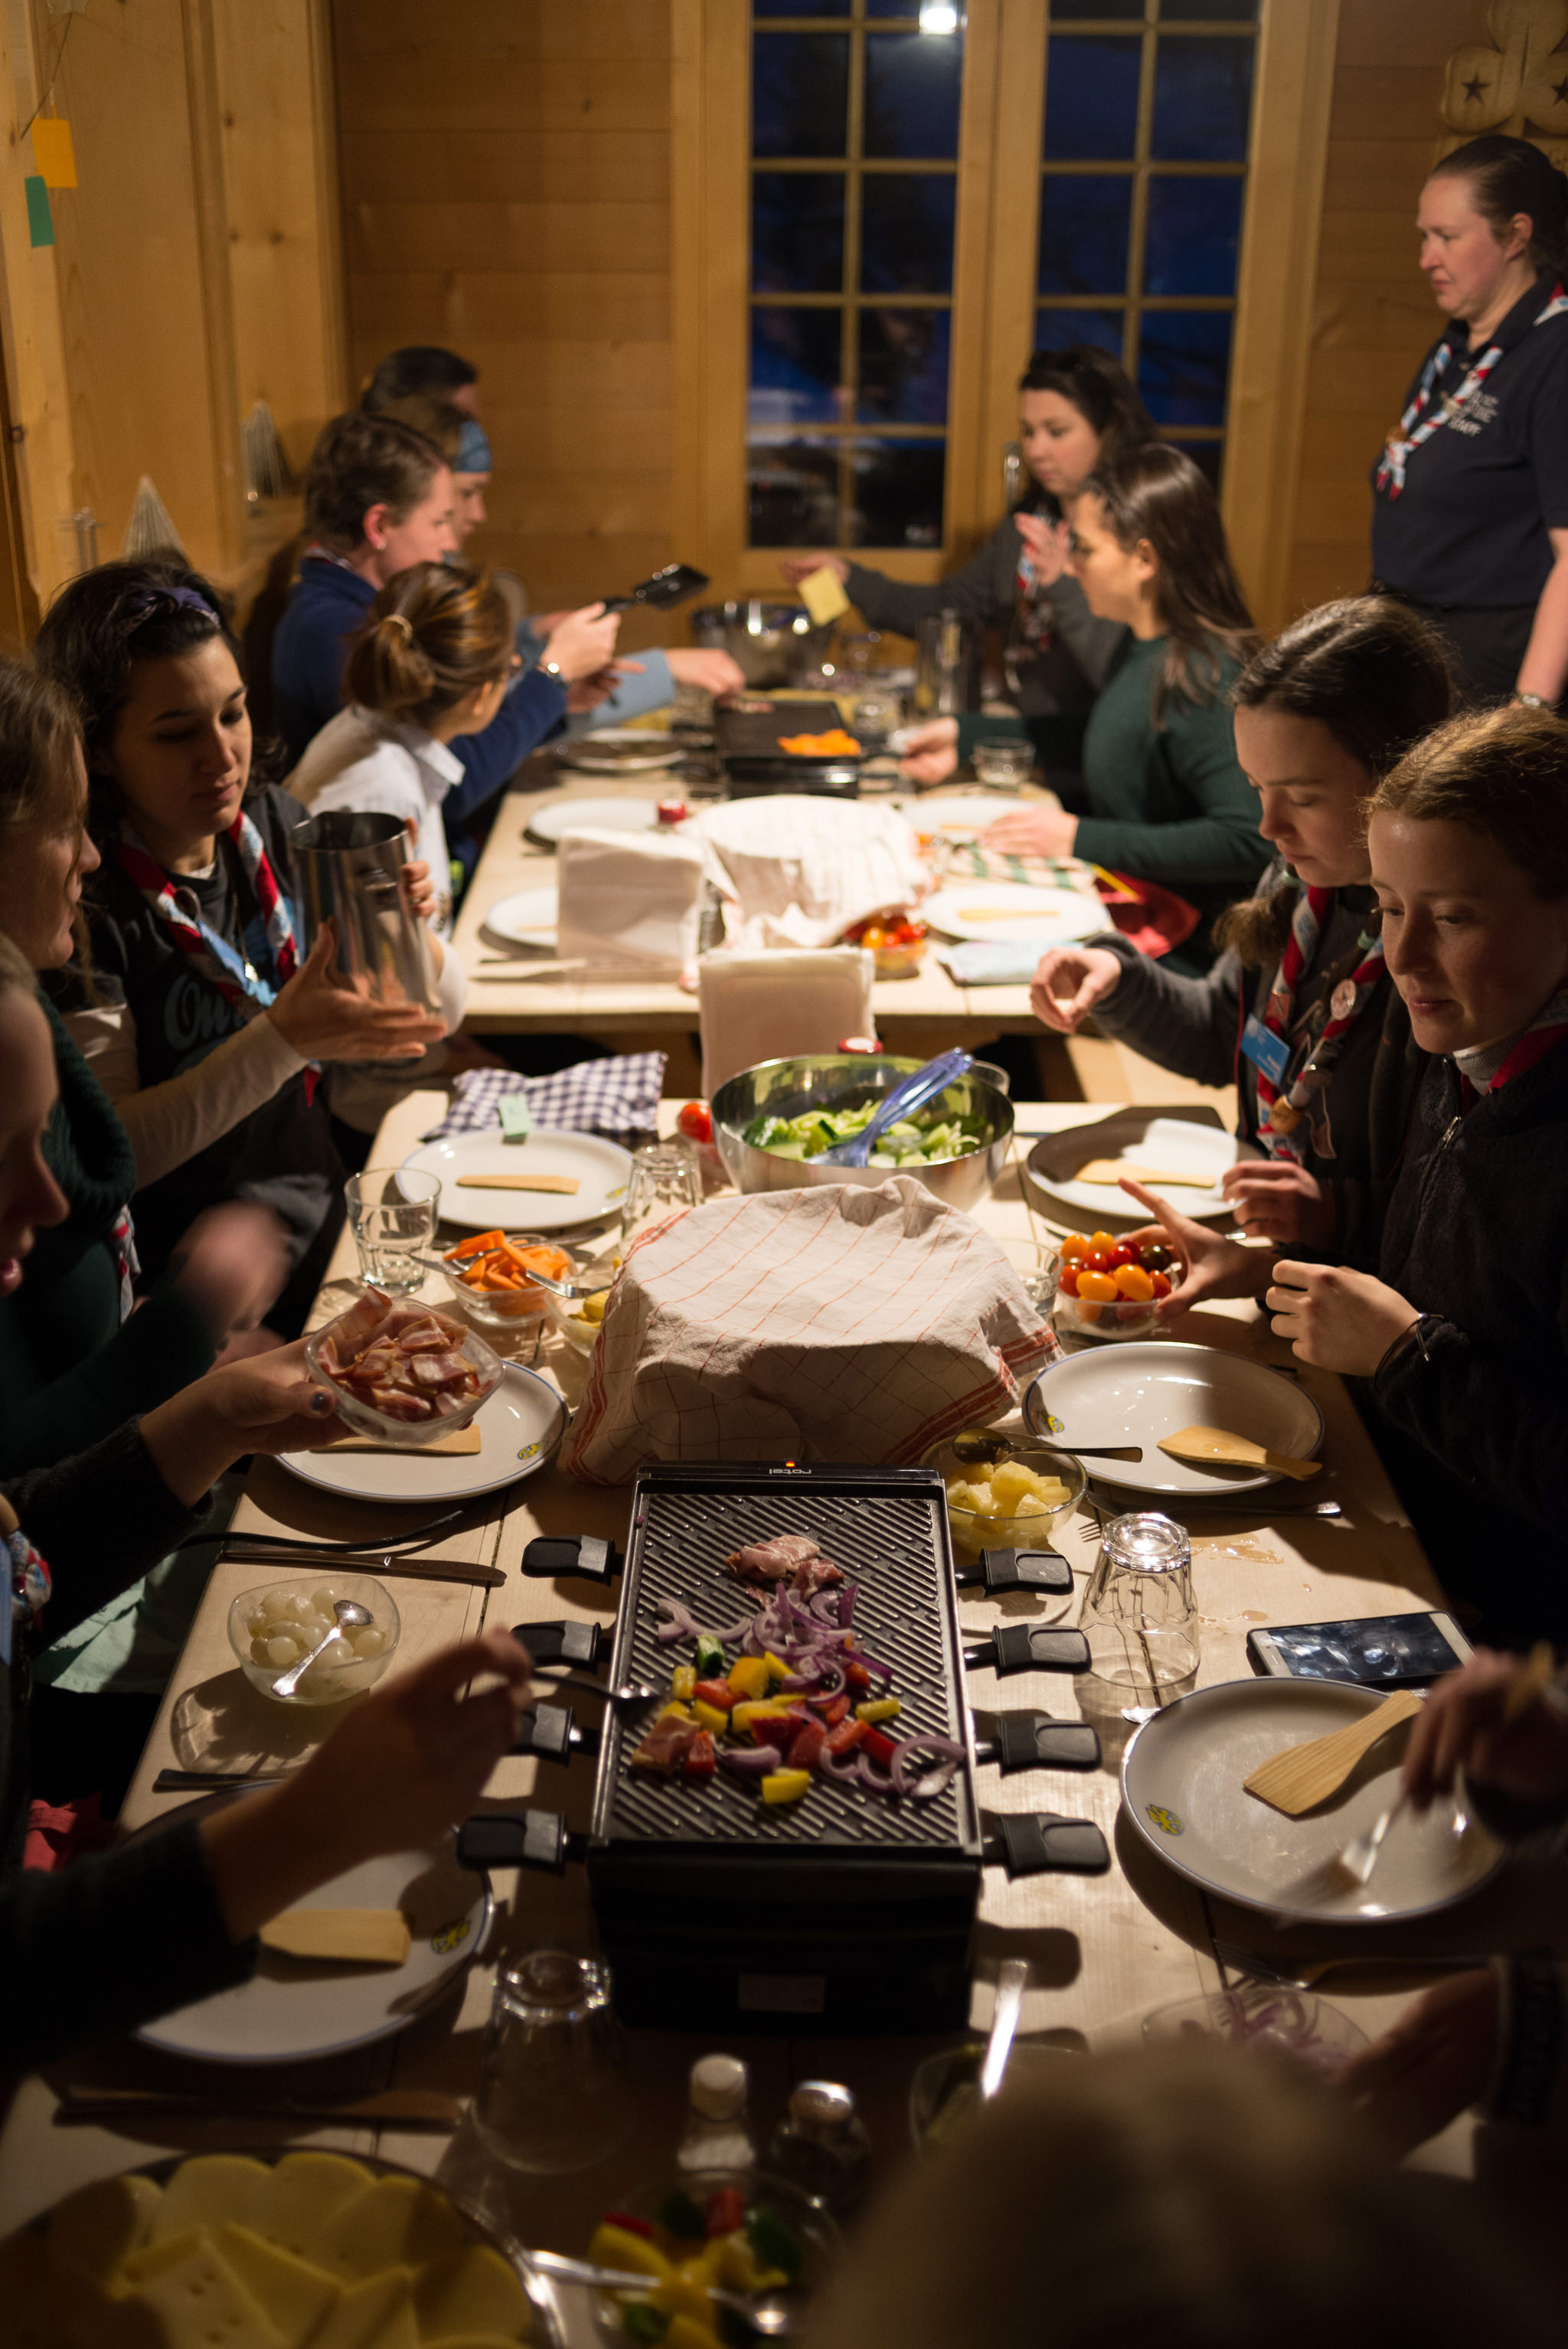 staff at our chalet eating raclette for dinner